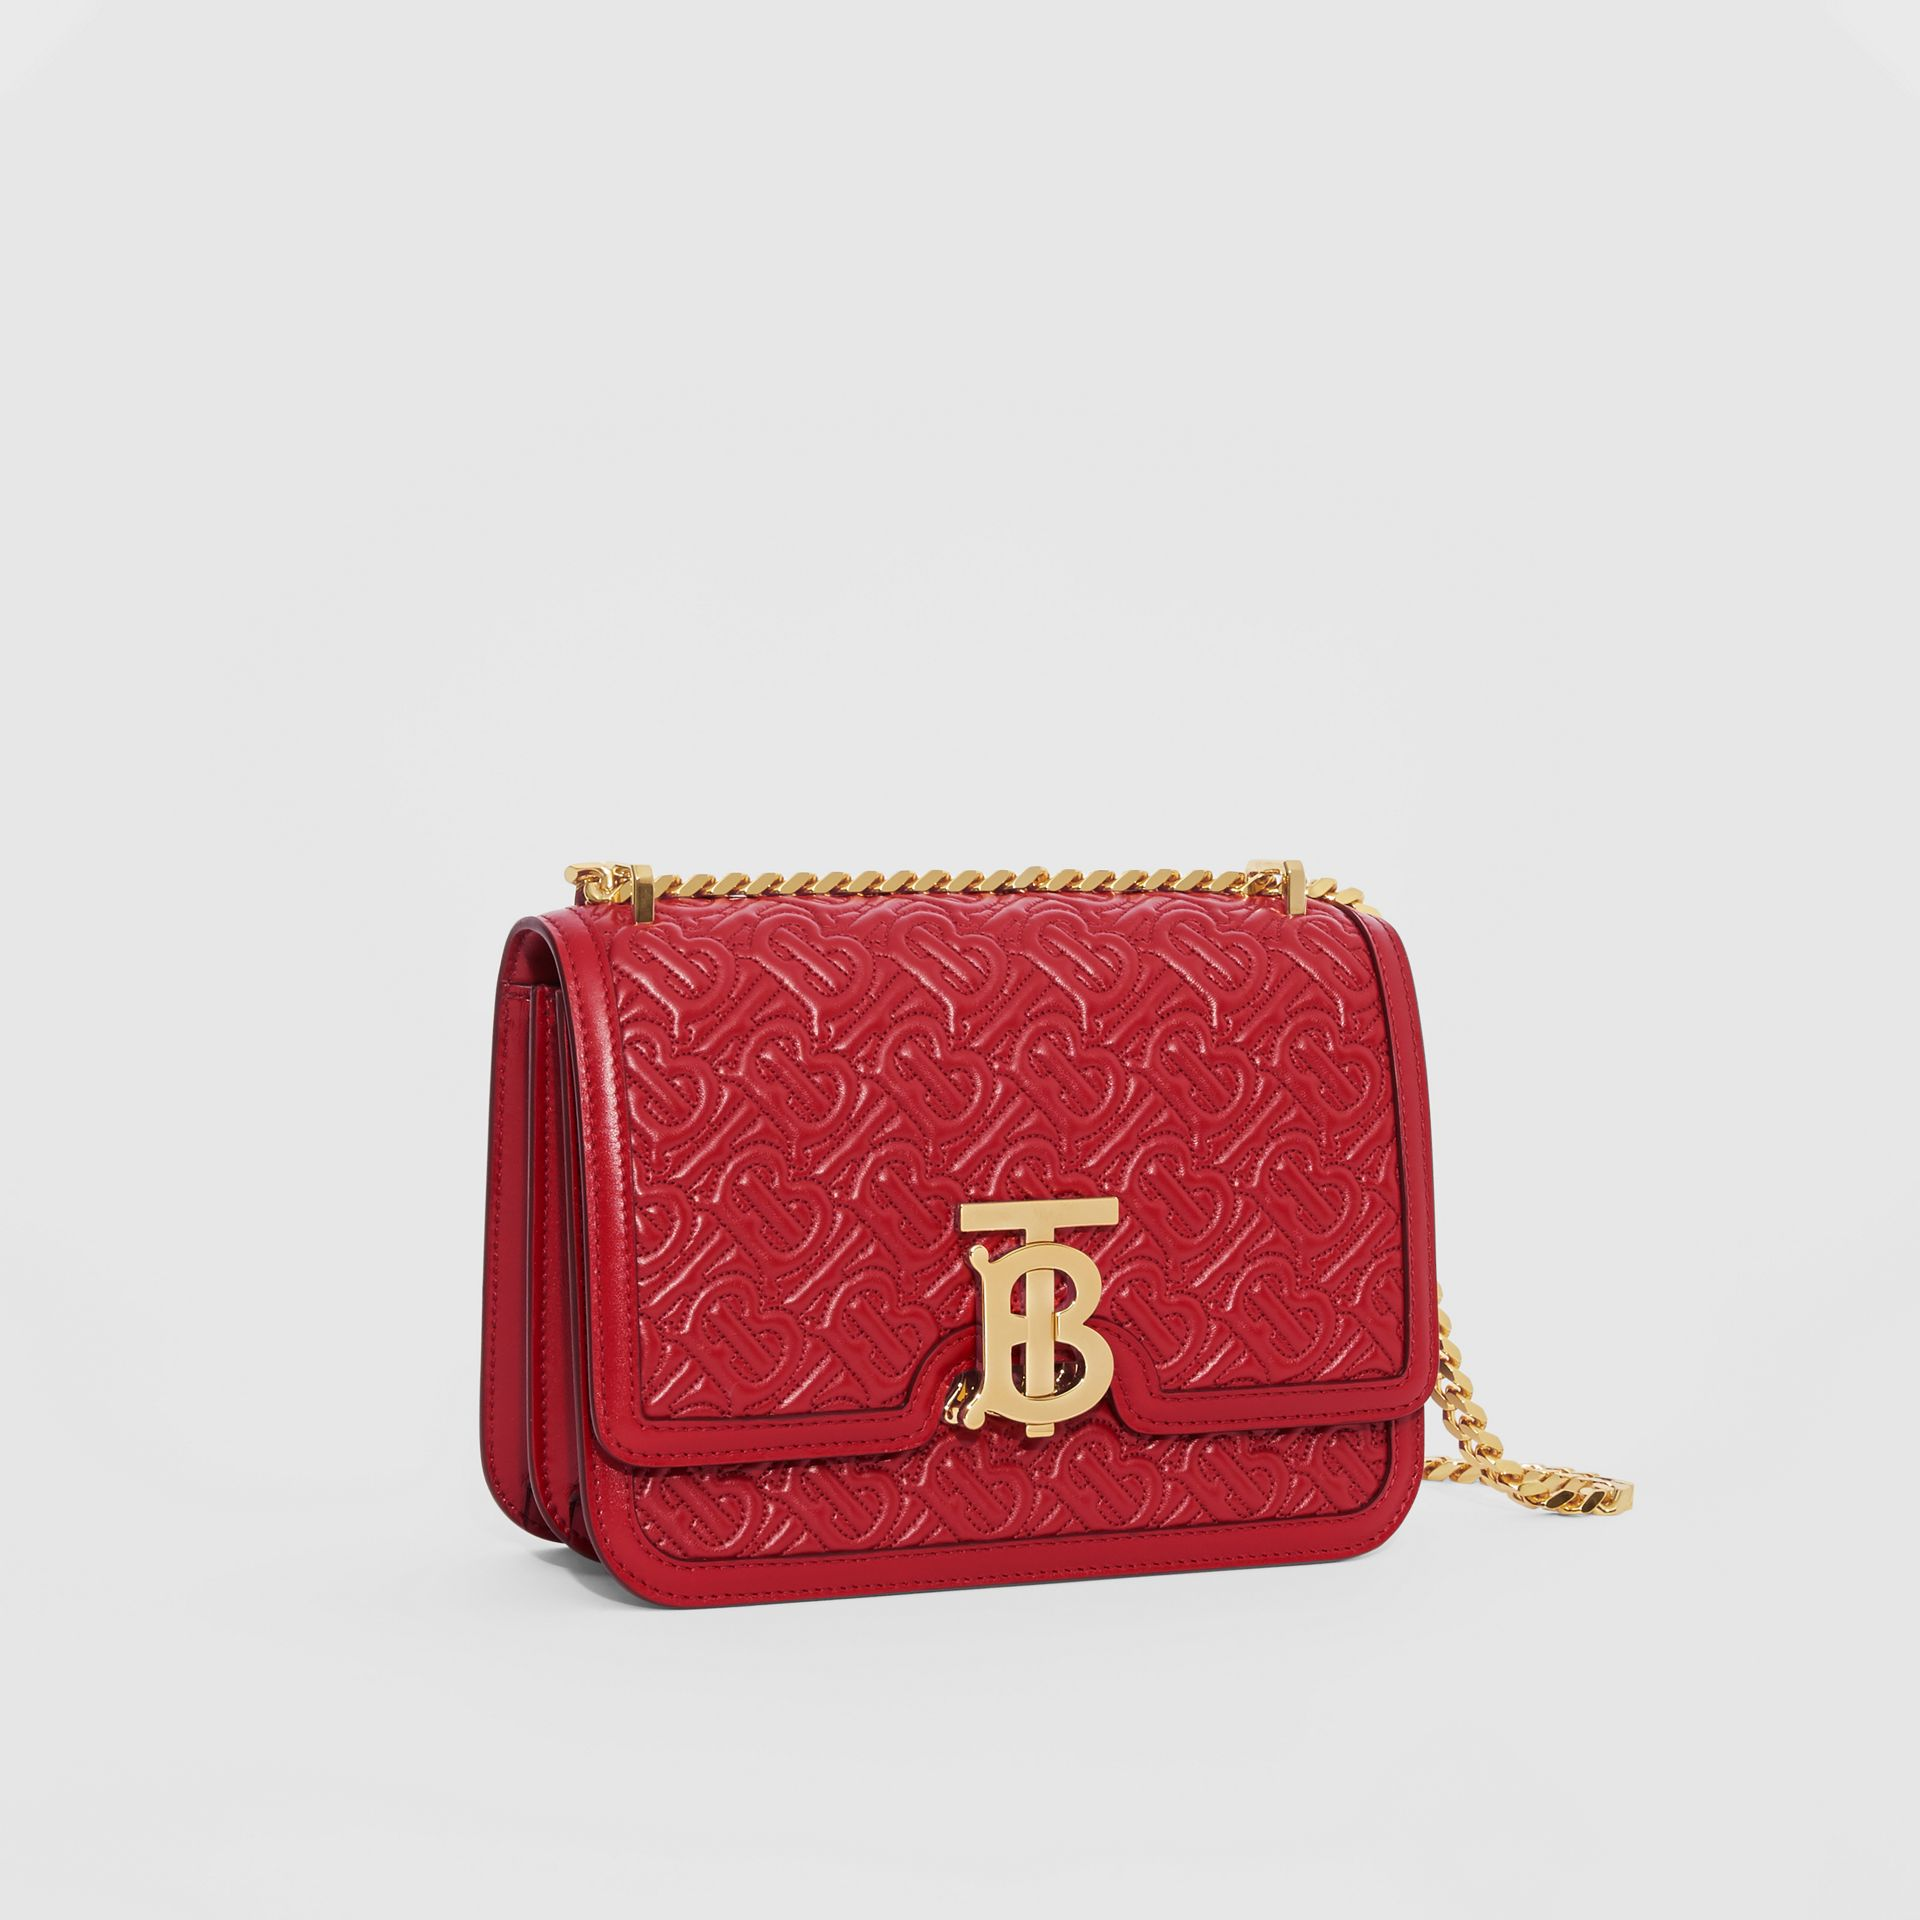 Small Quilted Monogram Lambskin TB Bag in Dark Carmine - Women | Burberry Hong Kong S.A.R. - gallery image 6